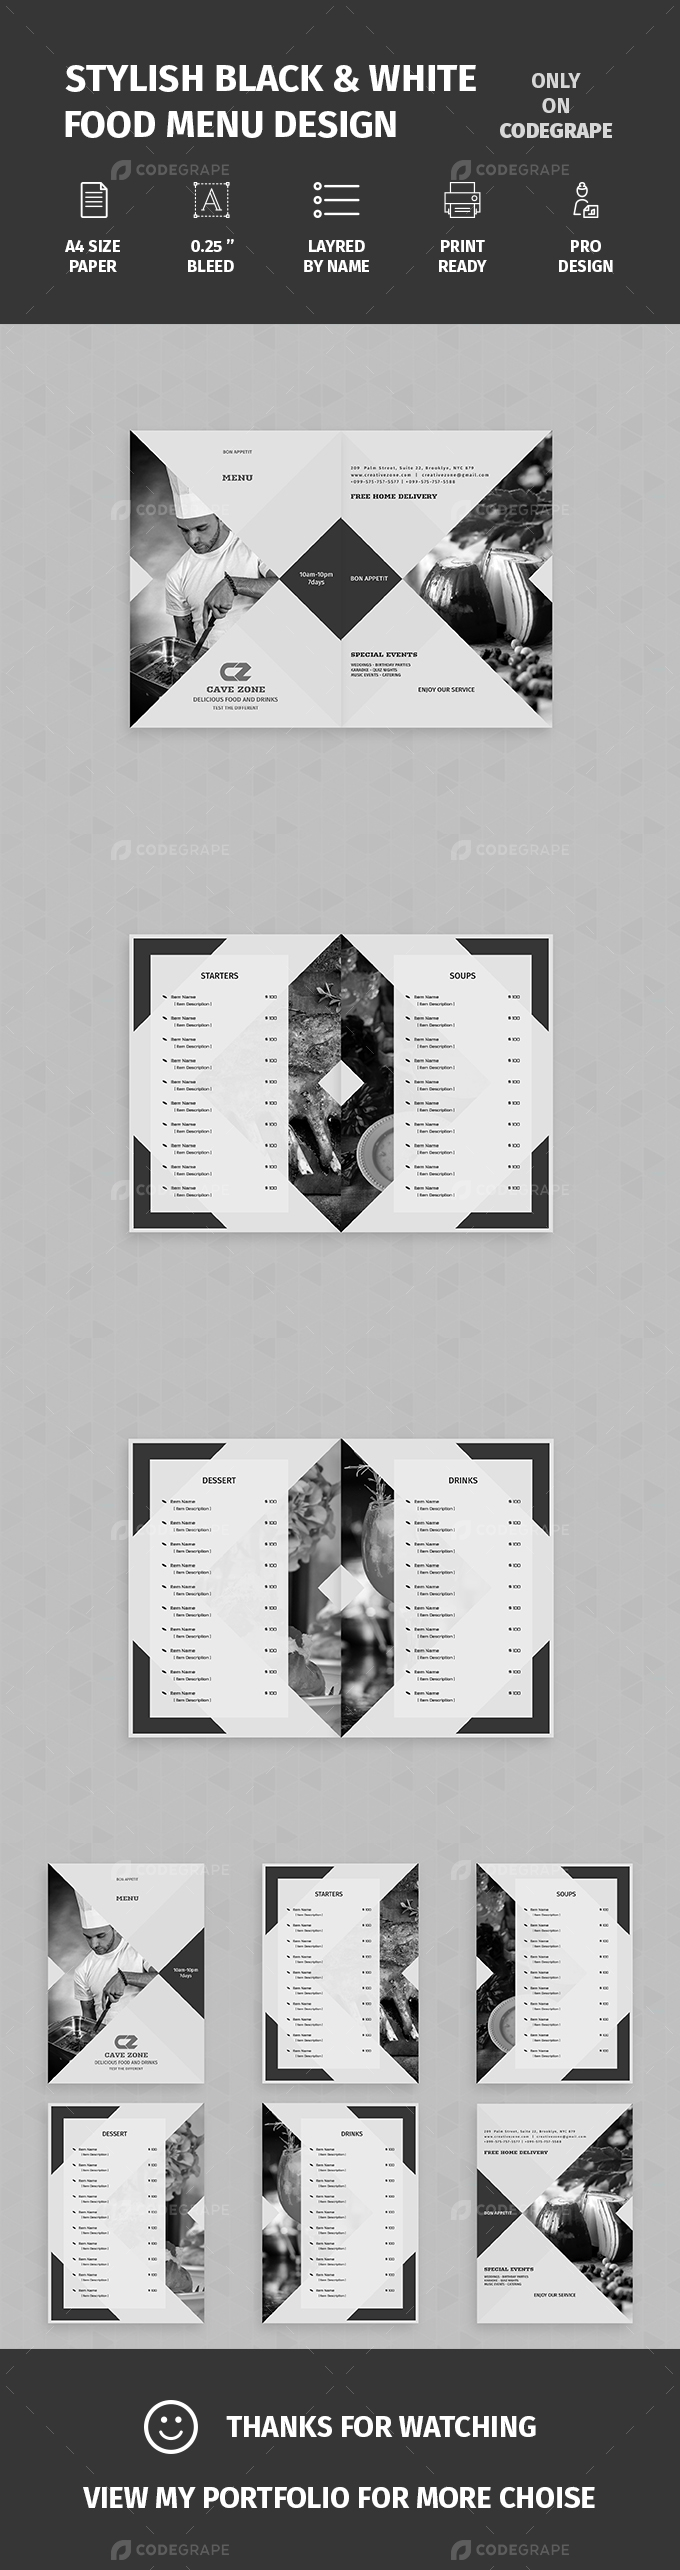 Stylish Black & White Food Menu Design